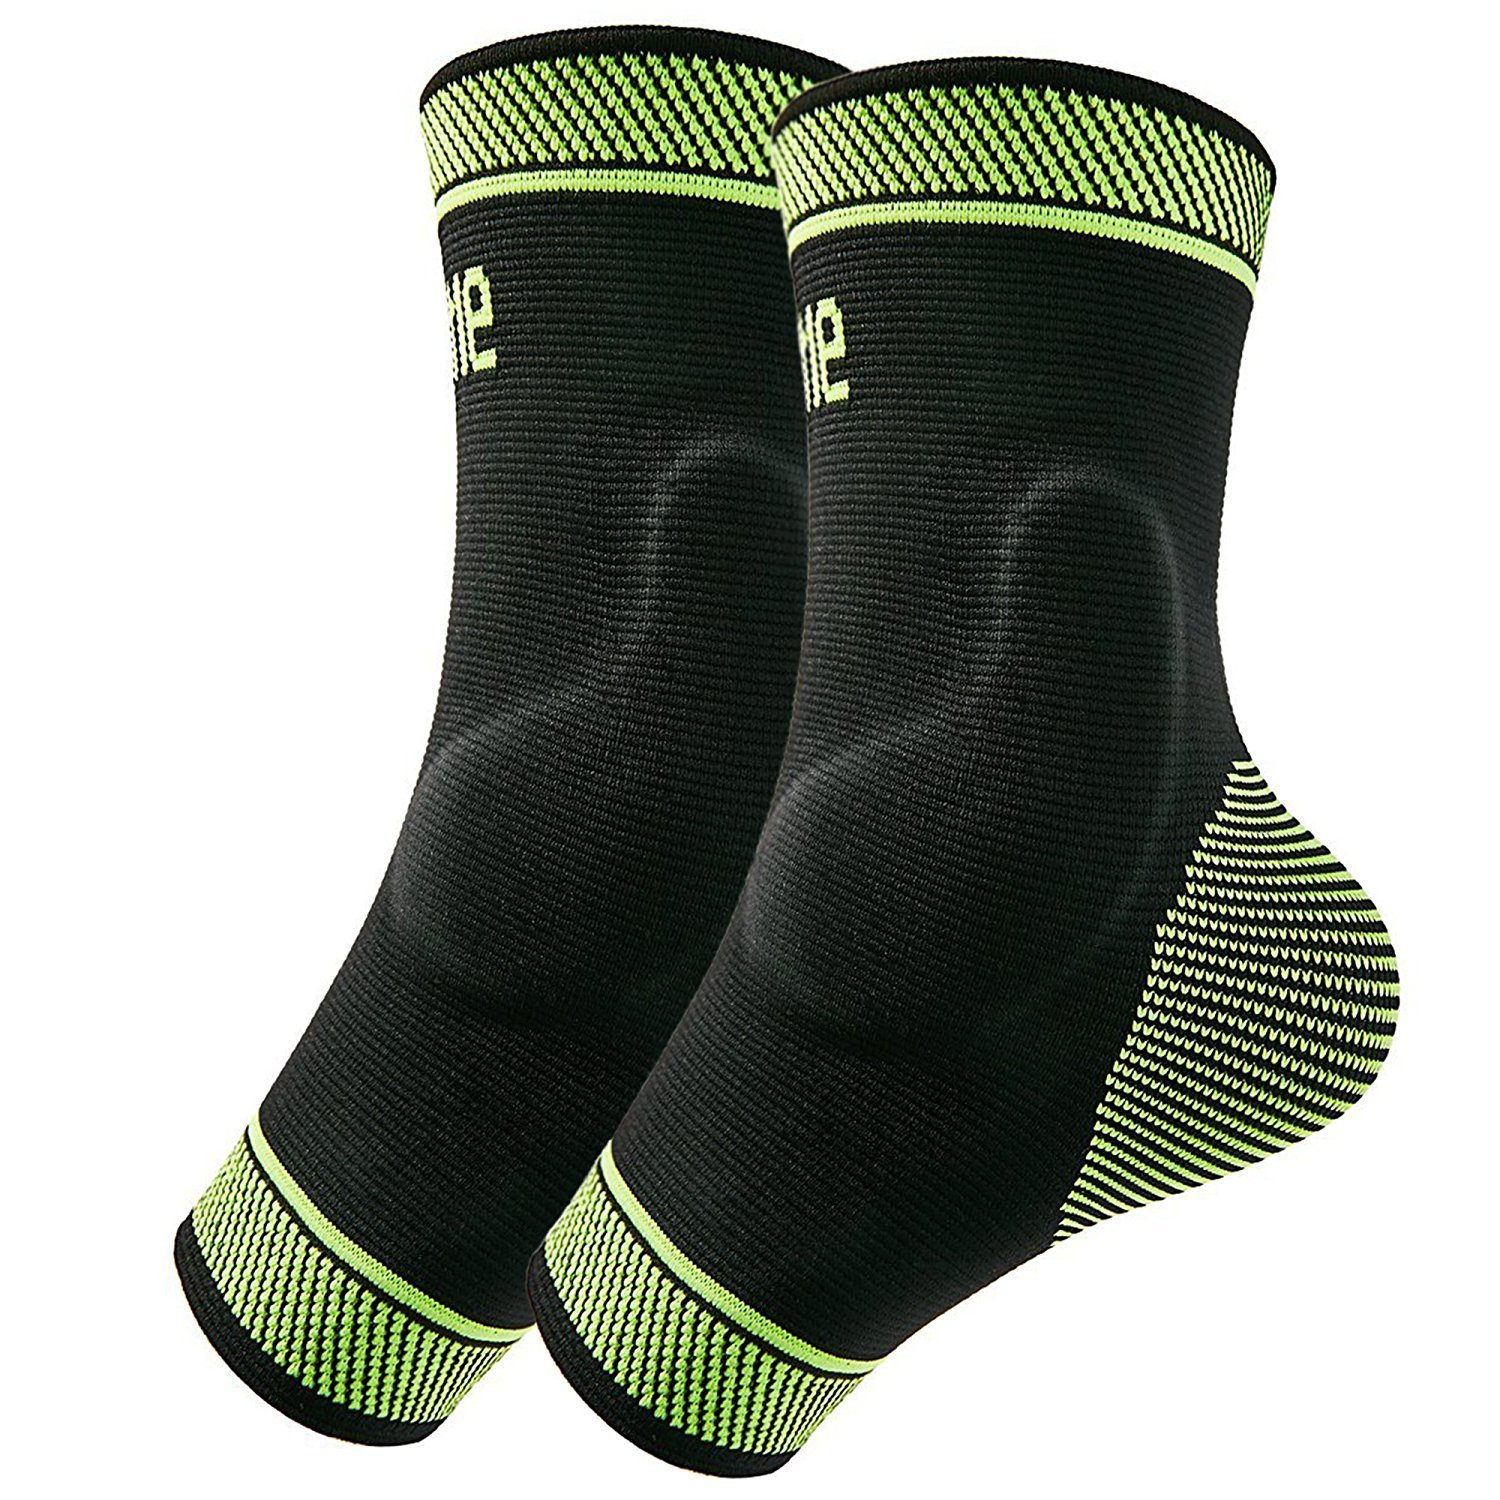 Protle Adjustable Foot Socks, Ankle Brace Compression Support Sleeve with Silicone Gel, Arch Support - Boosts Recovery from Joint Pain, Sprain, Plantar Fasciitis (Pair, Large)